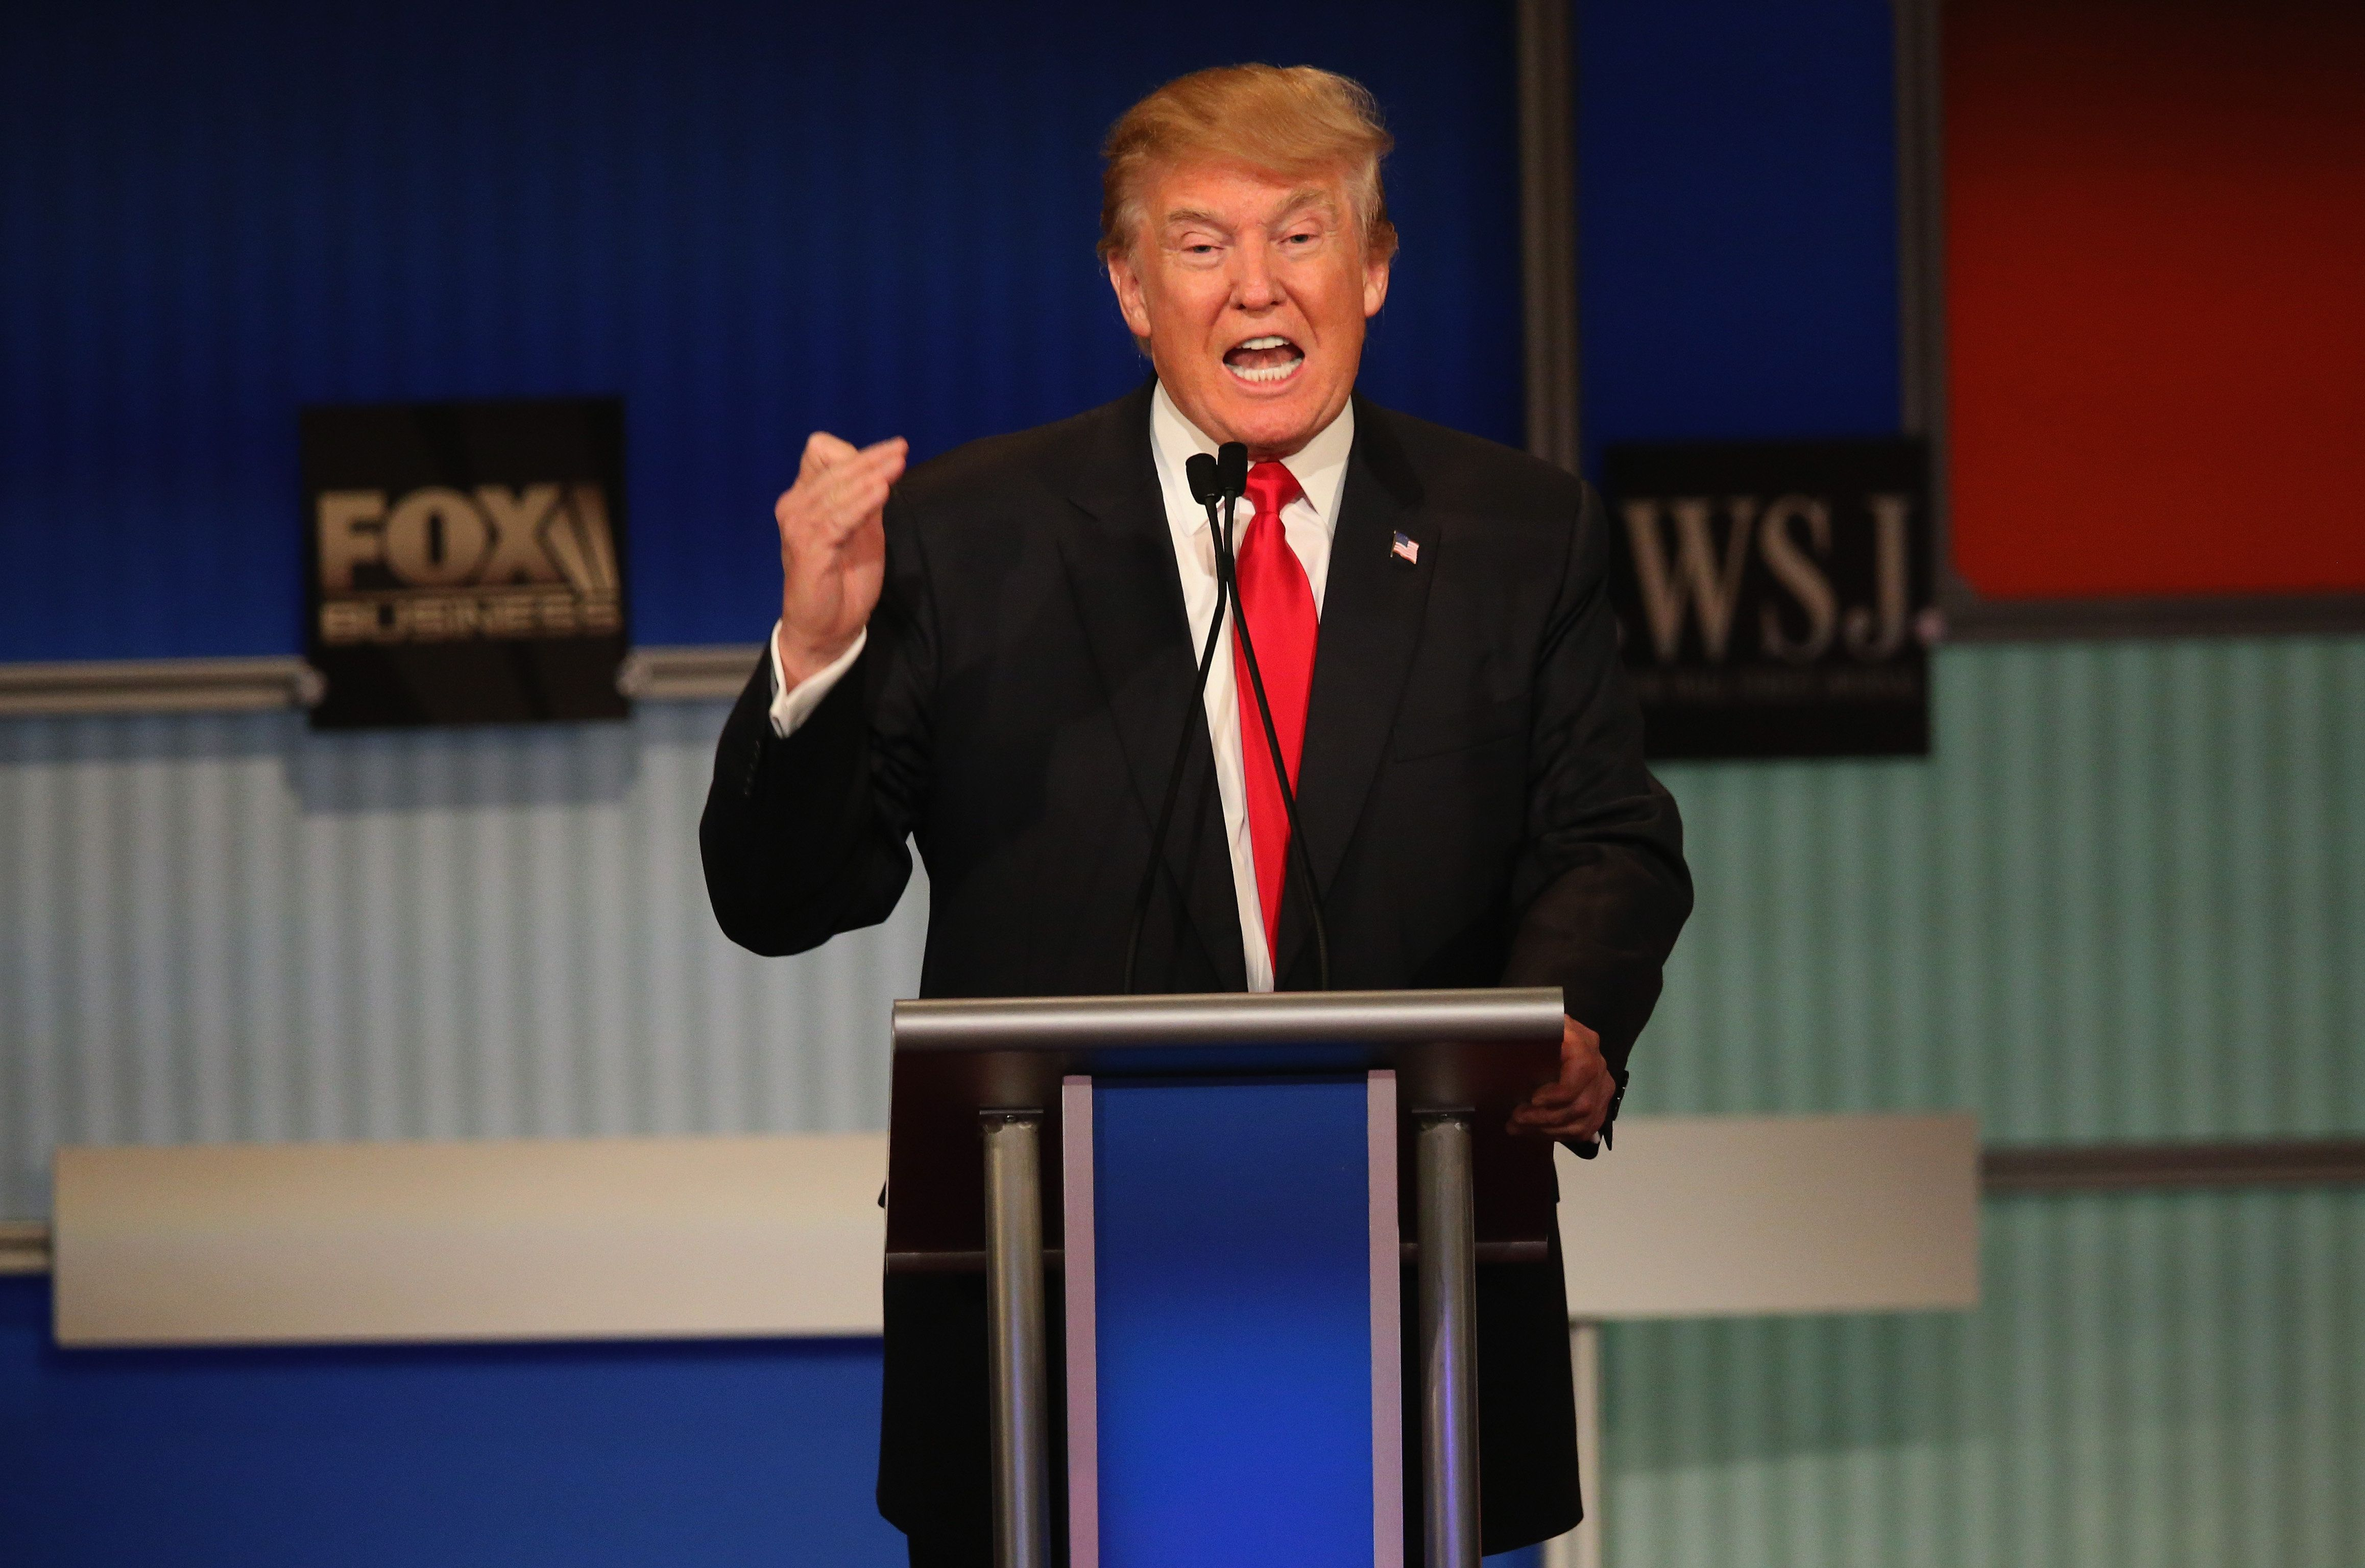 MILWAUKEE, WI - NOVEMBER 10:  Presidential candidate Donald Trump speaks during the Republican Presidential Debate sponsored by Fox Business and the Wall Street Journal at the Milwaukee Theatre November 10, 2015 in Milwaukee, Wisconsin. The fourth Republican debate is held in two parts, one main debate for the top eight candidates, and another for four other candidates lower in the current polls.  (Photo by Scott Olson/Getty Images)